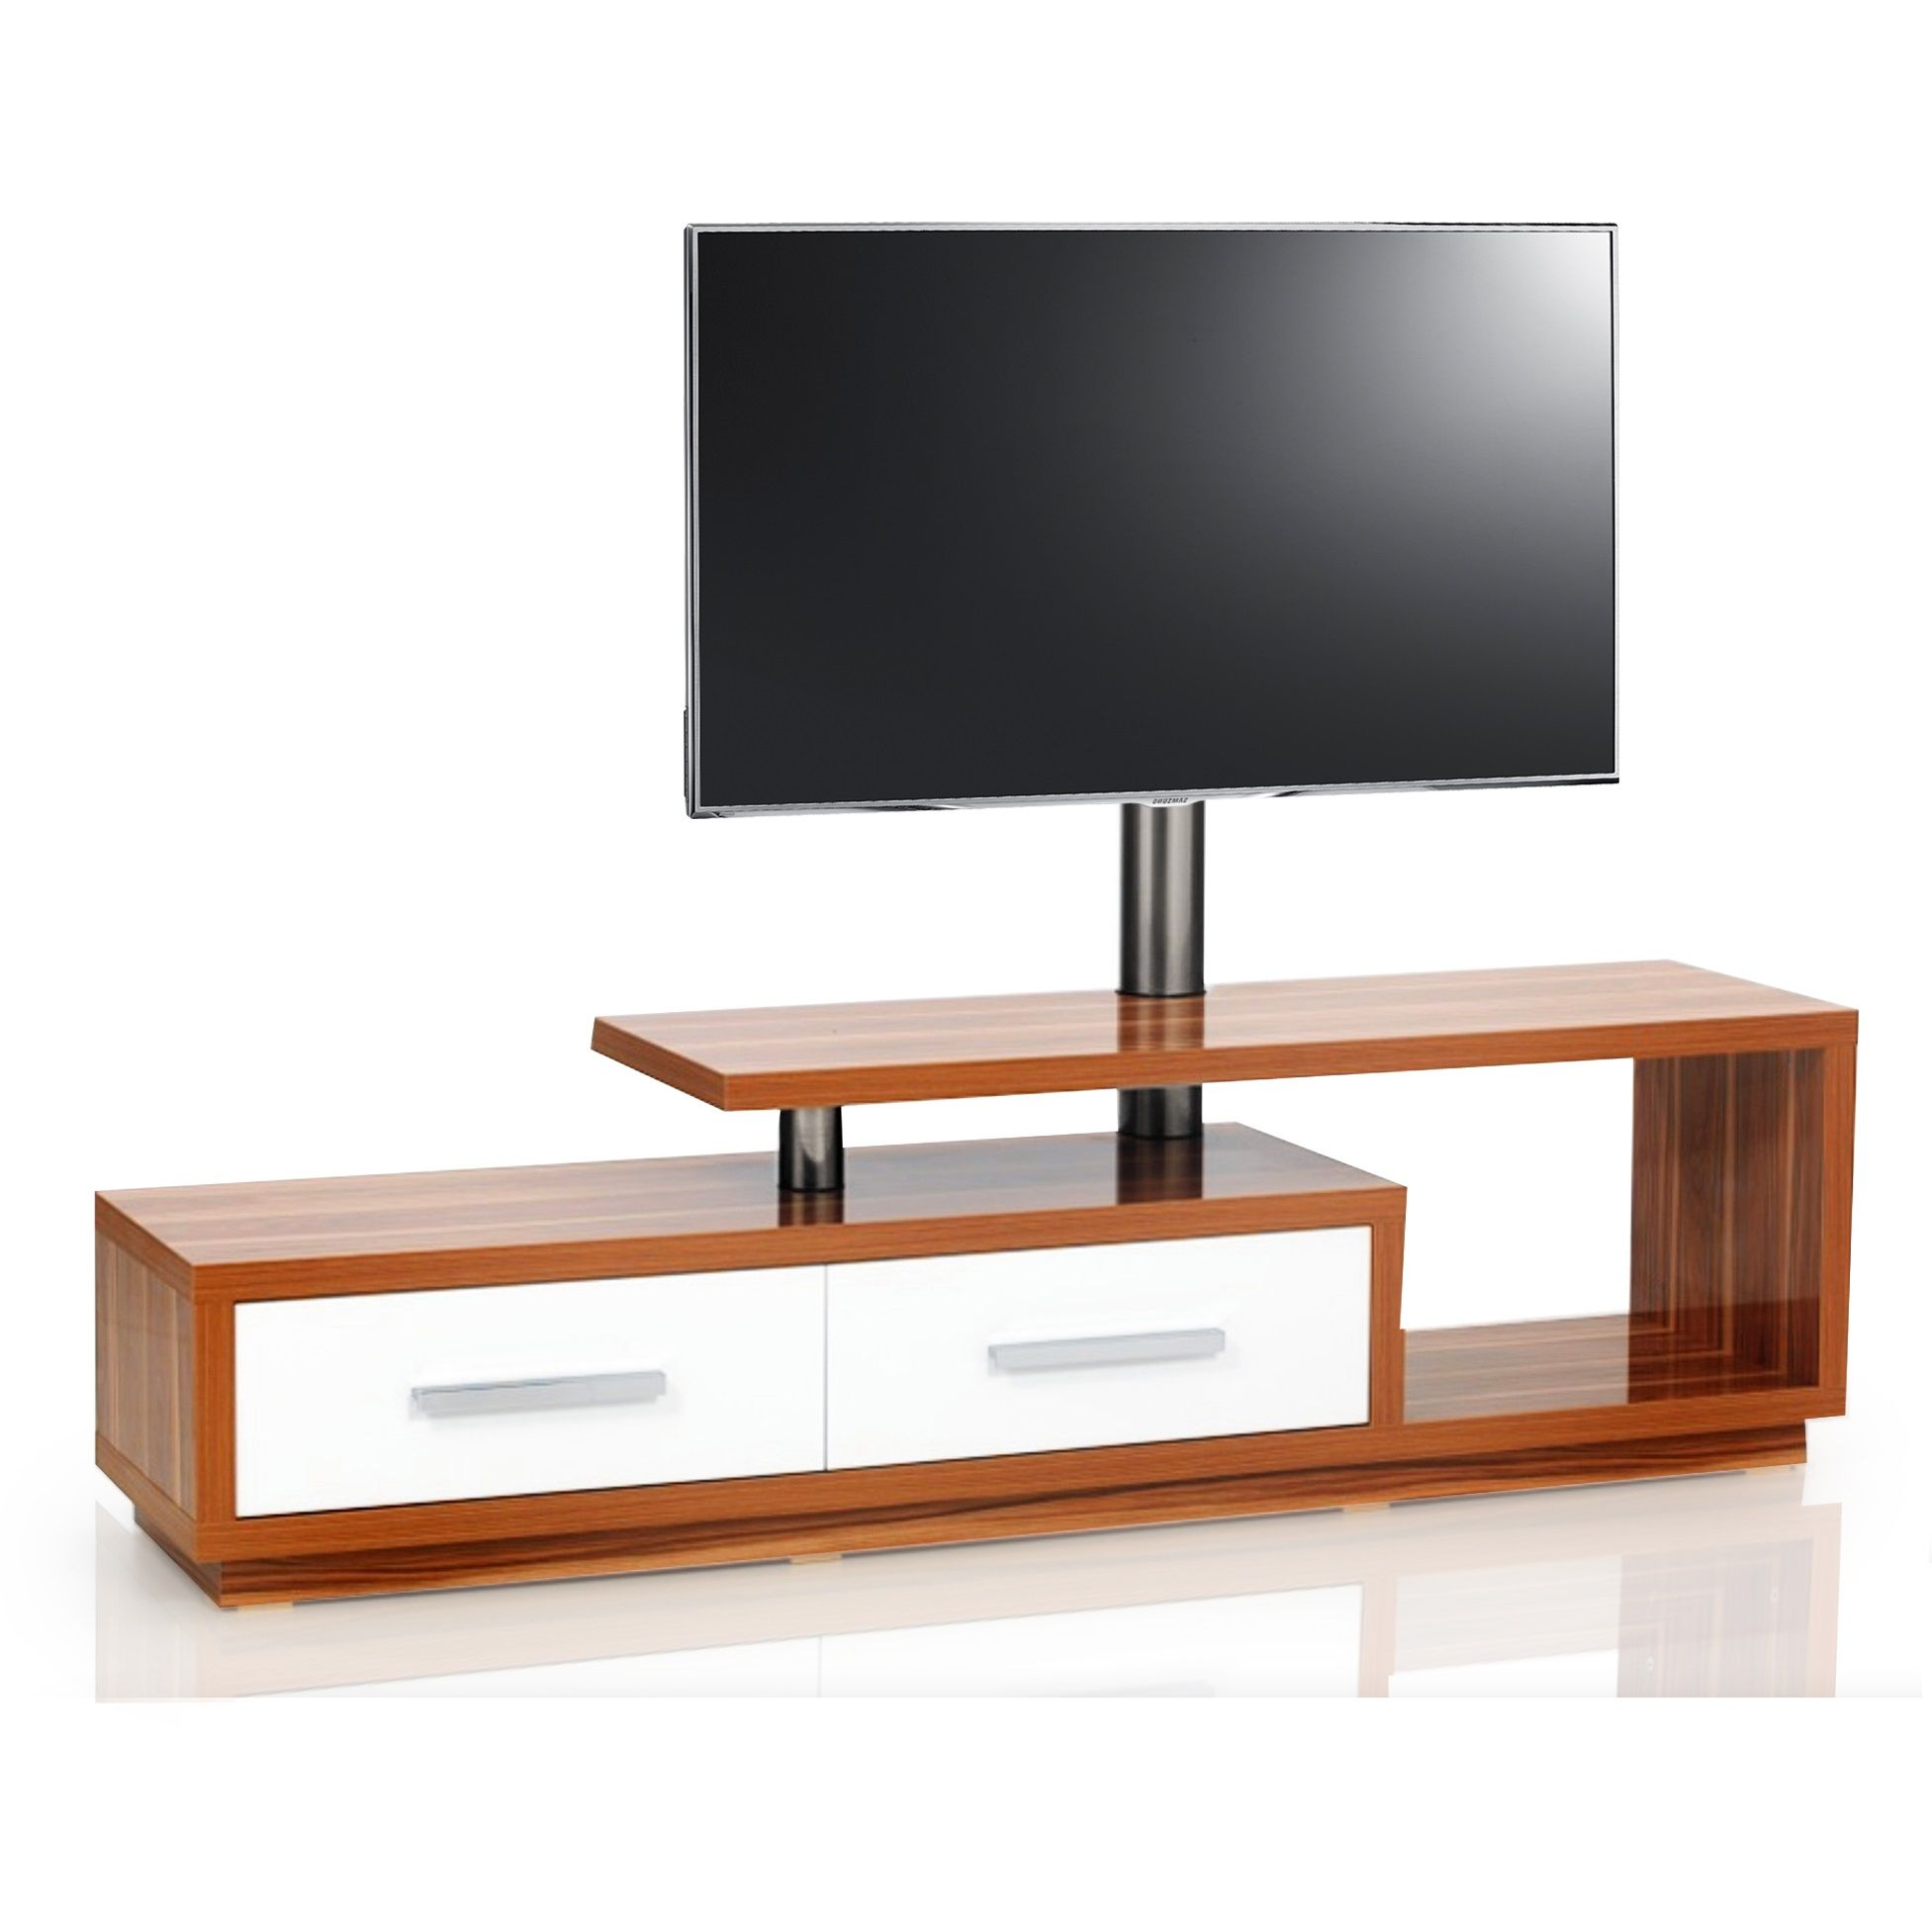 Modele Des Tables Pour Television Plasma En Fer Forge - R Sultat De Recherche D Images Pour Table De Television Plasma [mjhdah]http://www.lotusea.fr/boutique/images_produits/meuble-tv-fer-forge-paris-0-z.jpeg